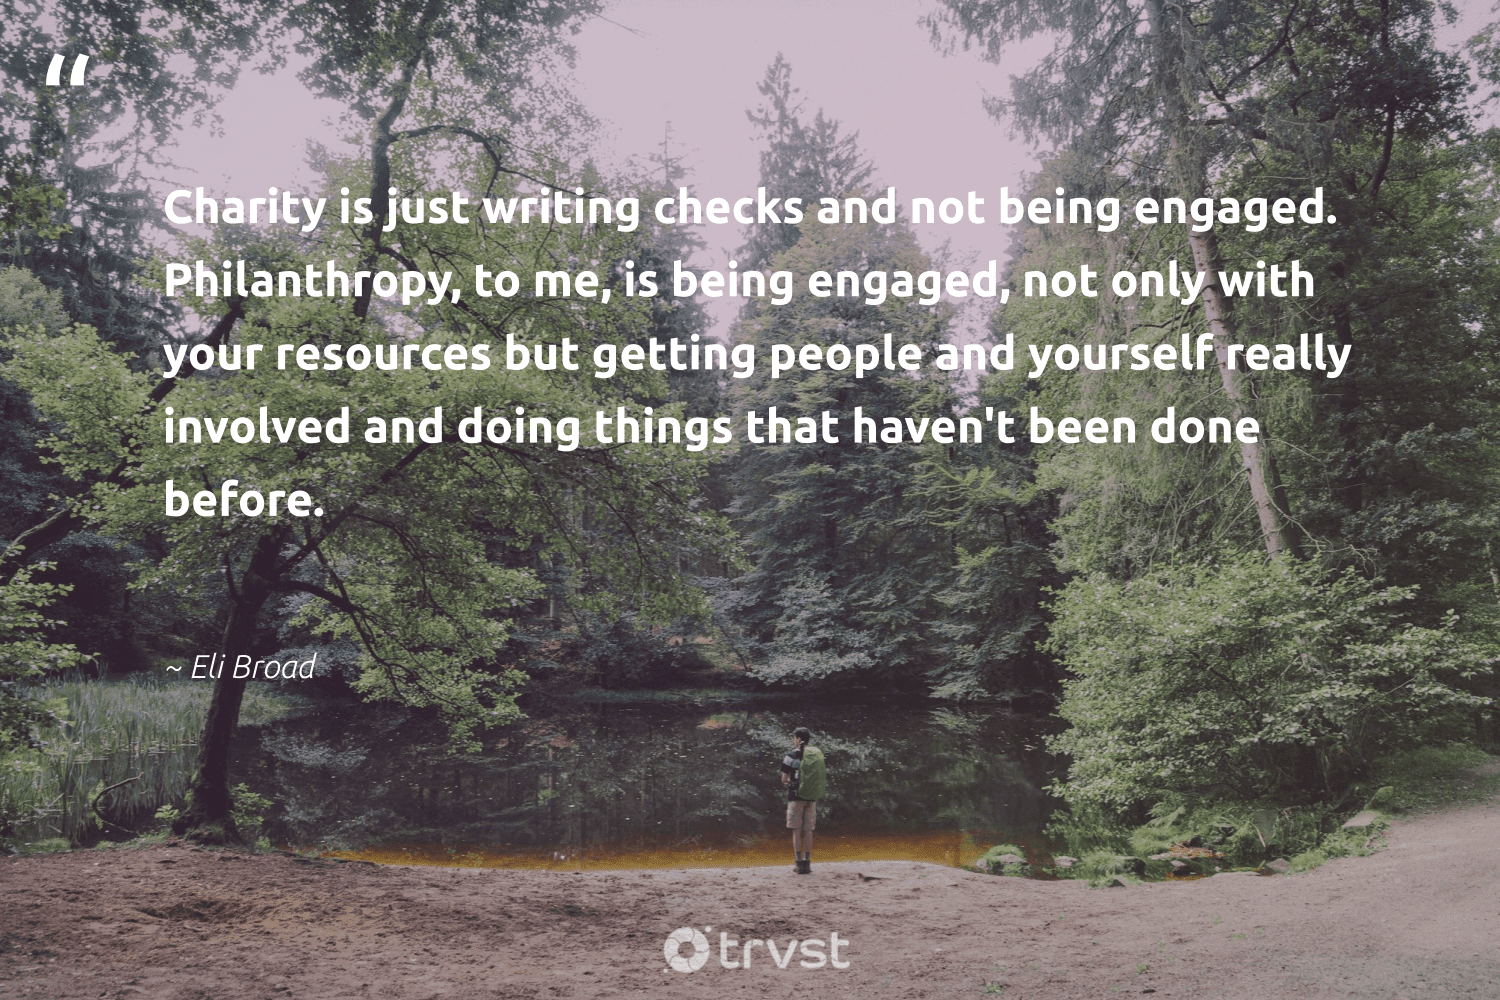 """""""Charity is just writing checks and not being engaged. Philanthropy, to me, is being engaged, not only with your resources but getting people and yourself really involved and doing things that haven't been done before.""""  - Eli Broad #trvst #quotes #philanthropy #philanthropic #giveforthefuture #itscooltobekind #bethechange #togetherwecan #changemakers #socialimpact #socialchange #thinkgreen"""